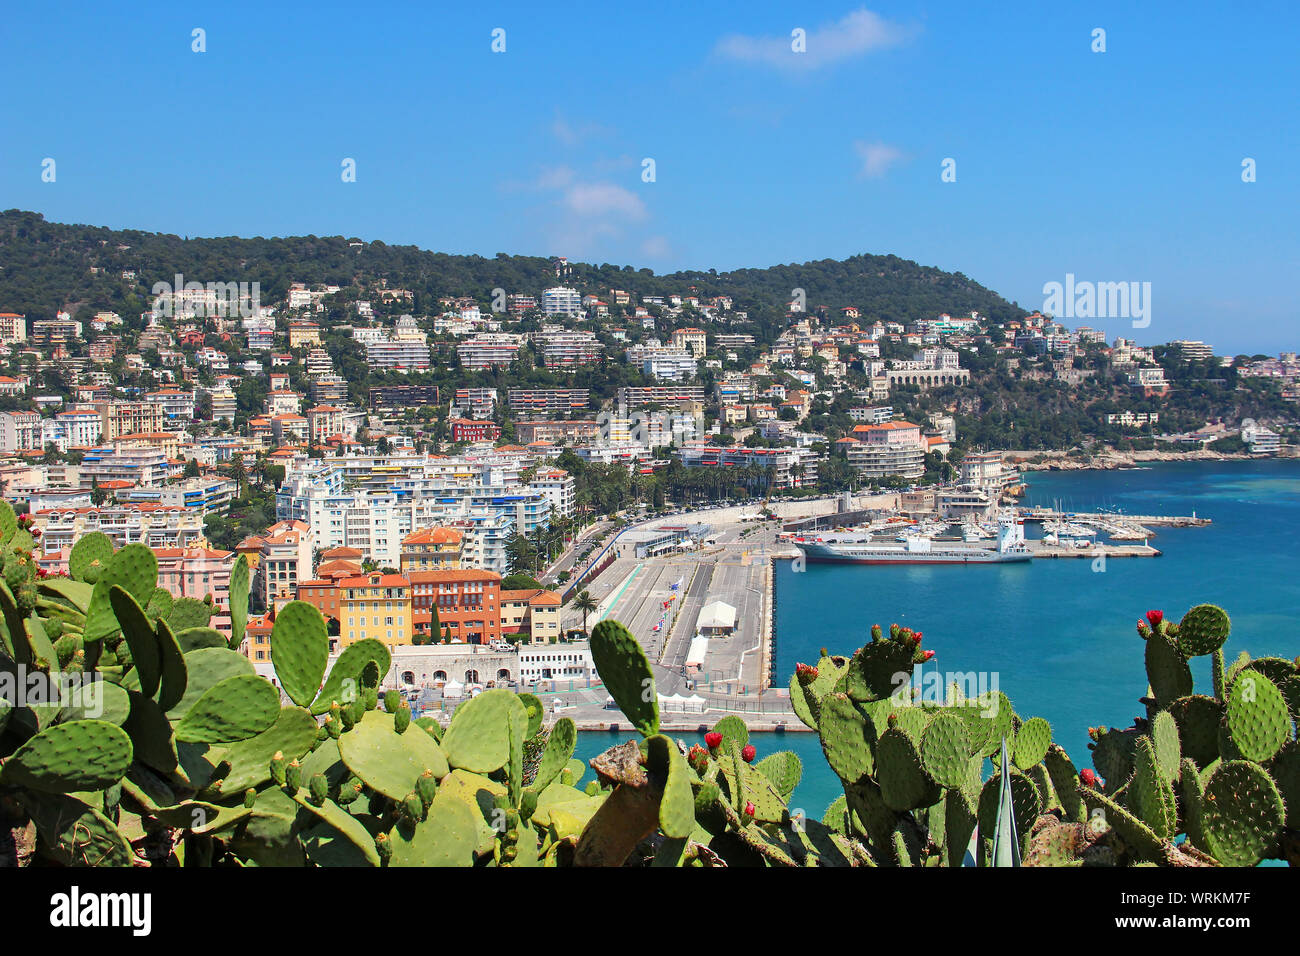 Port of Nice, Cote d'Azur, France Stock Photo